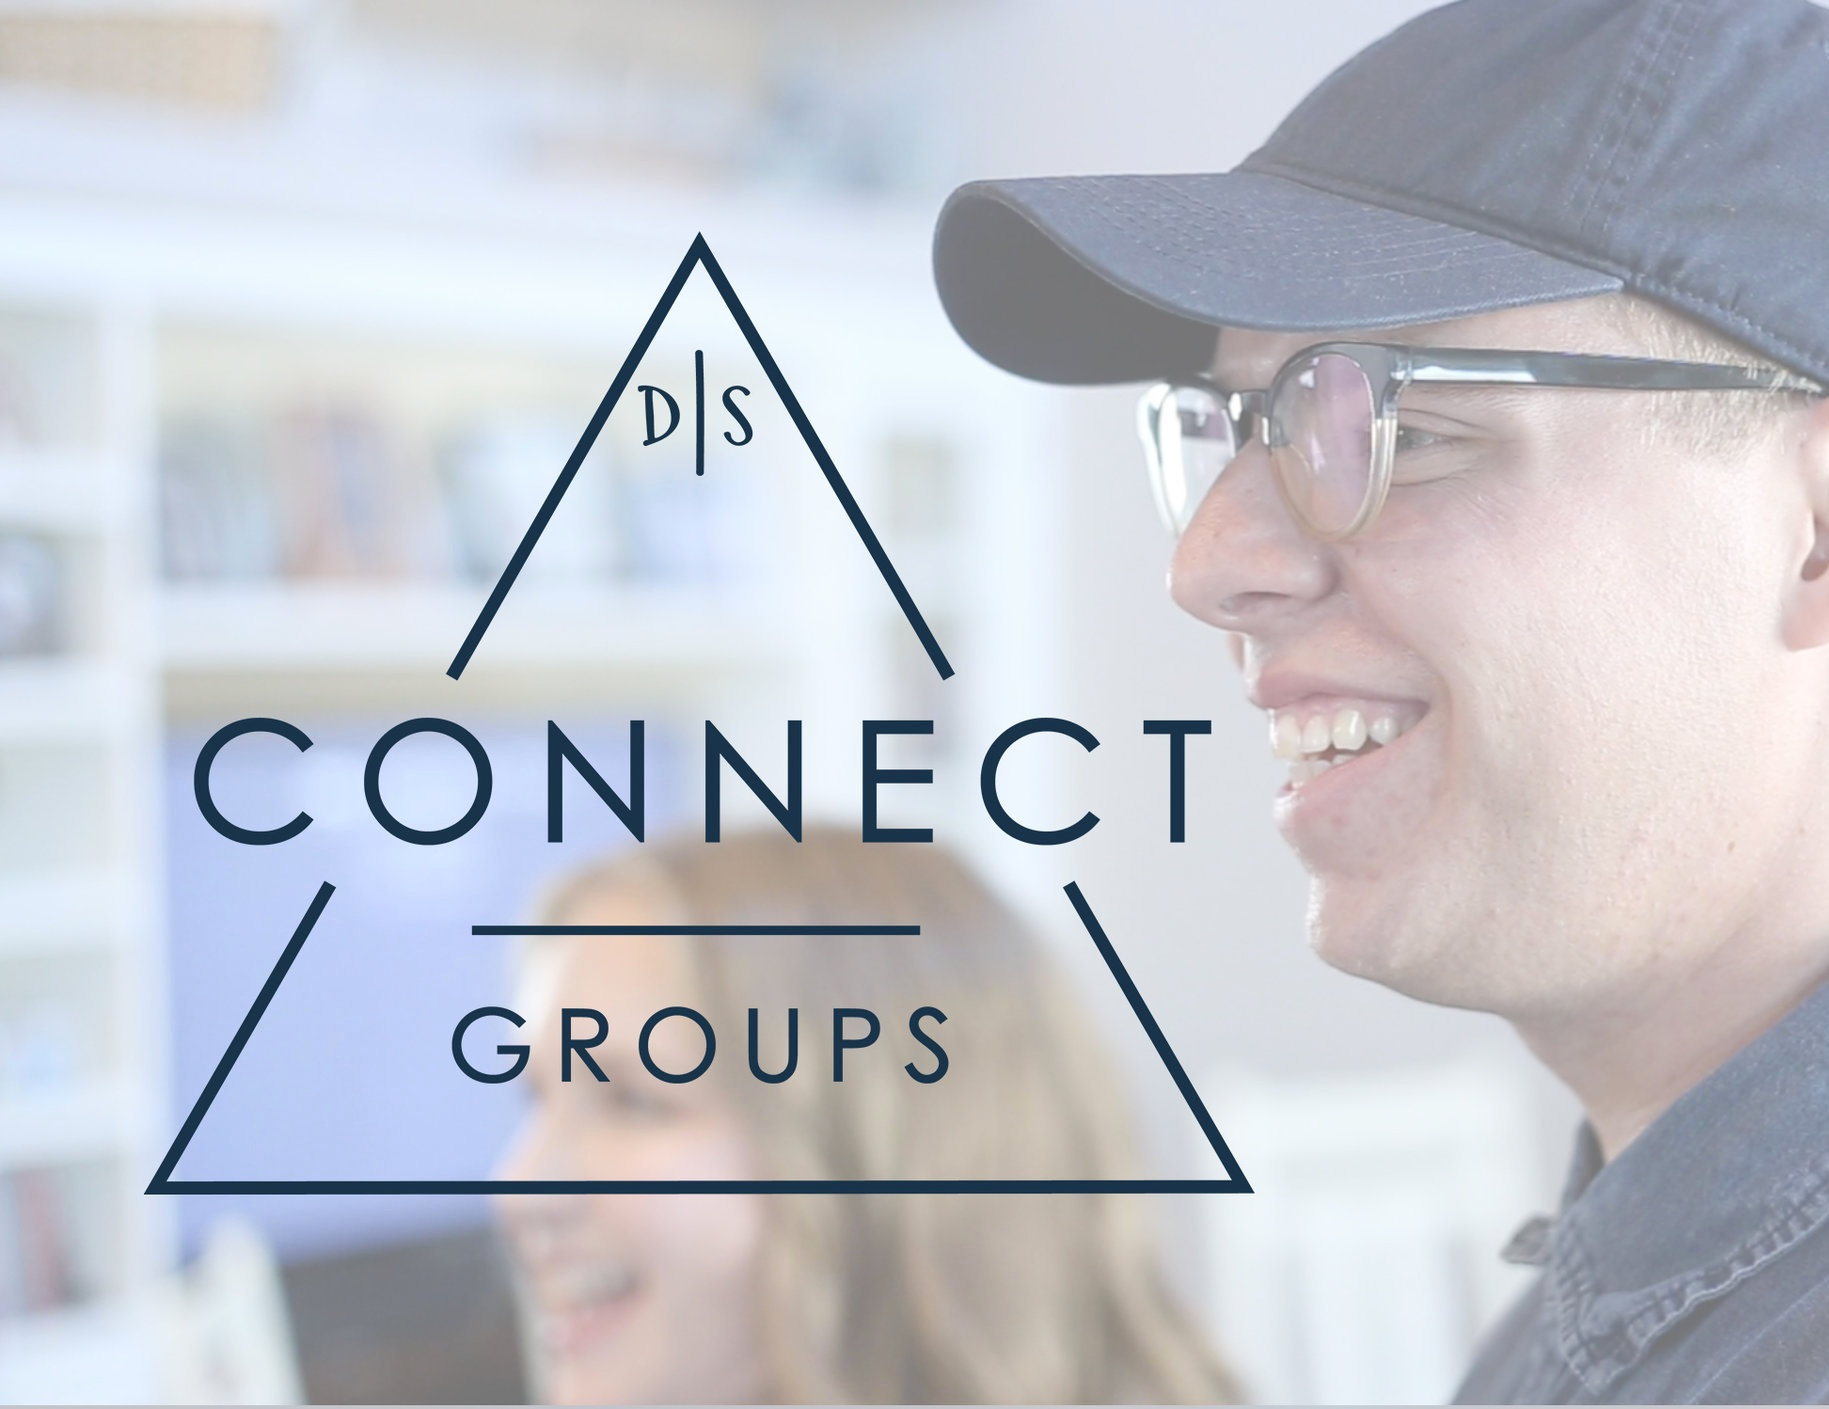 Connect Groups Web Image.jpg